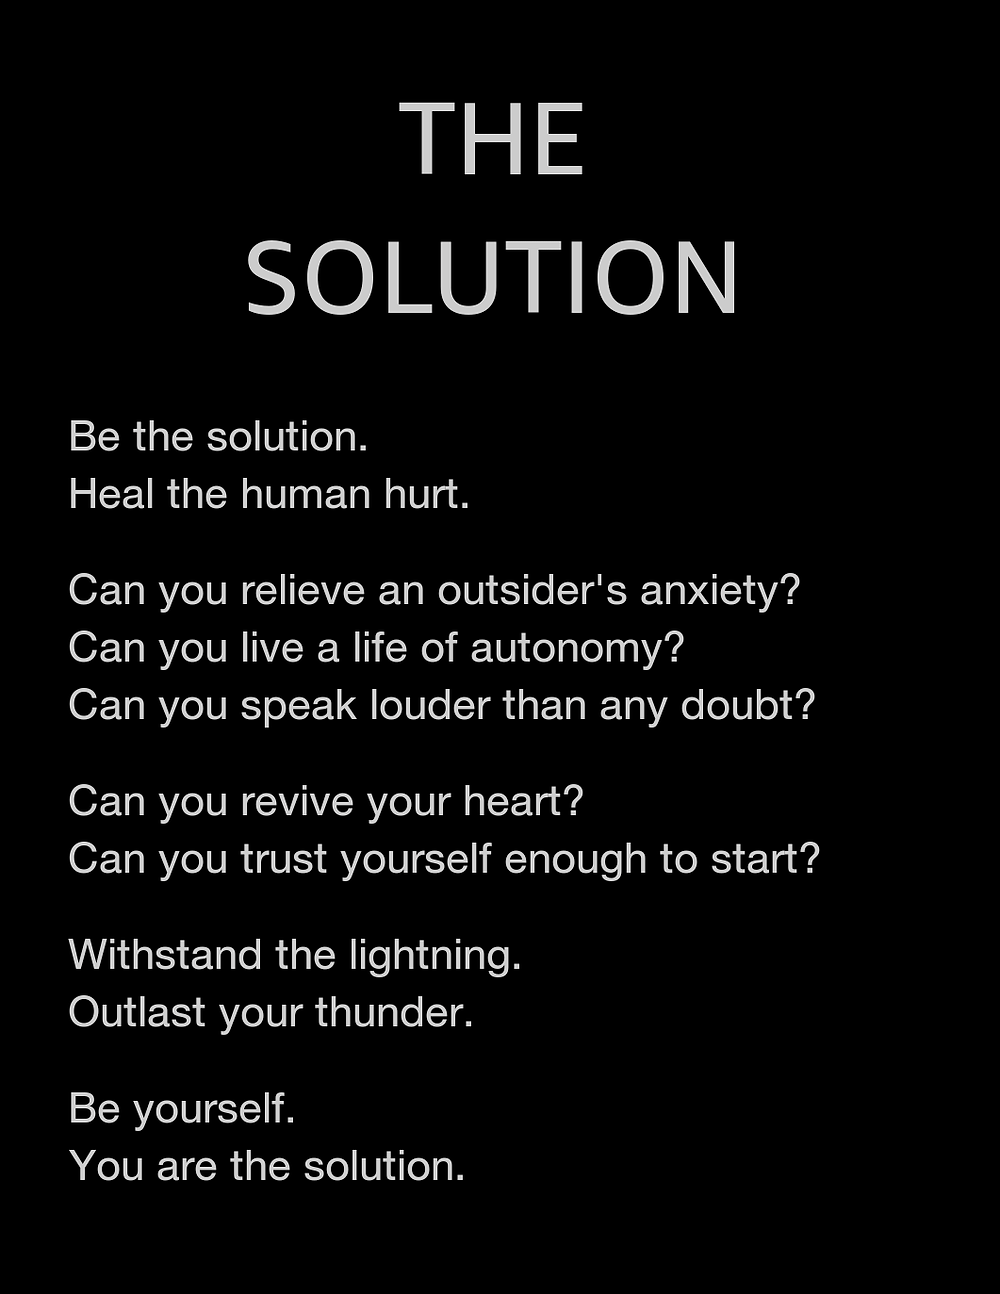 The solution is a poem from Katie Moran's book The Spirit Inside